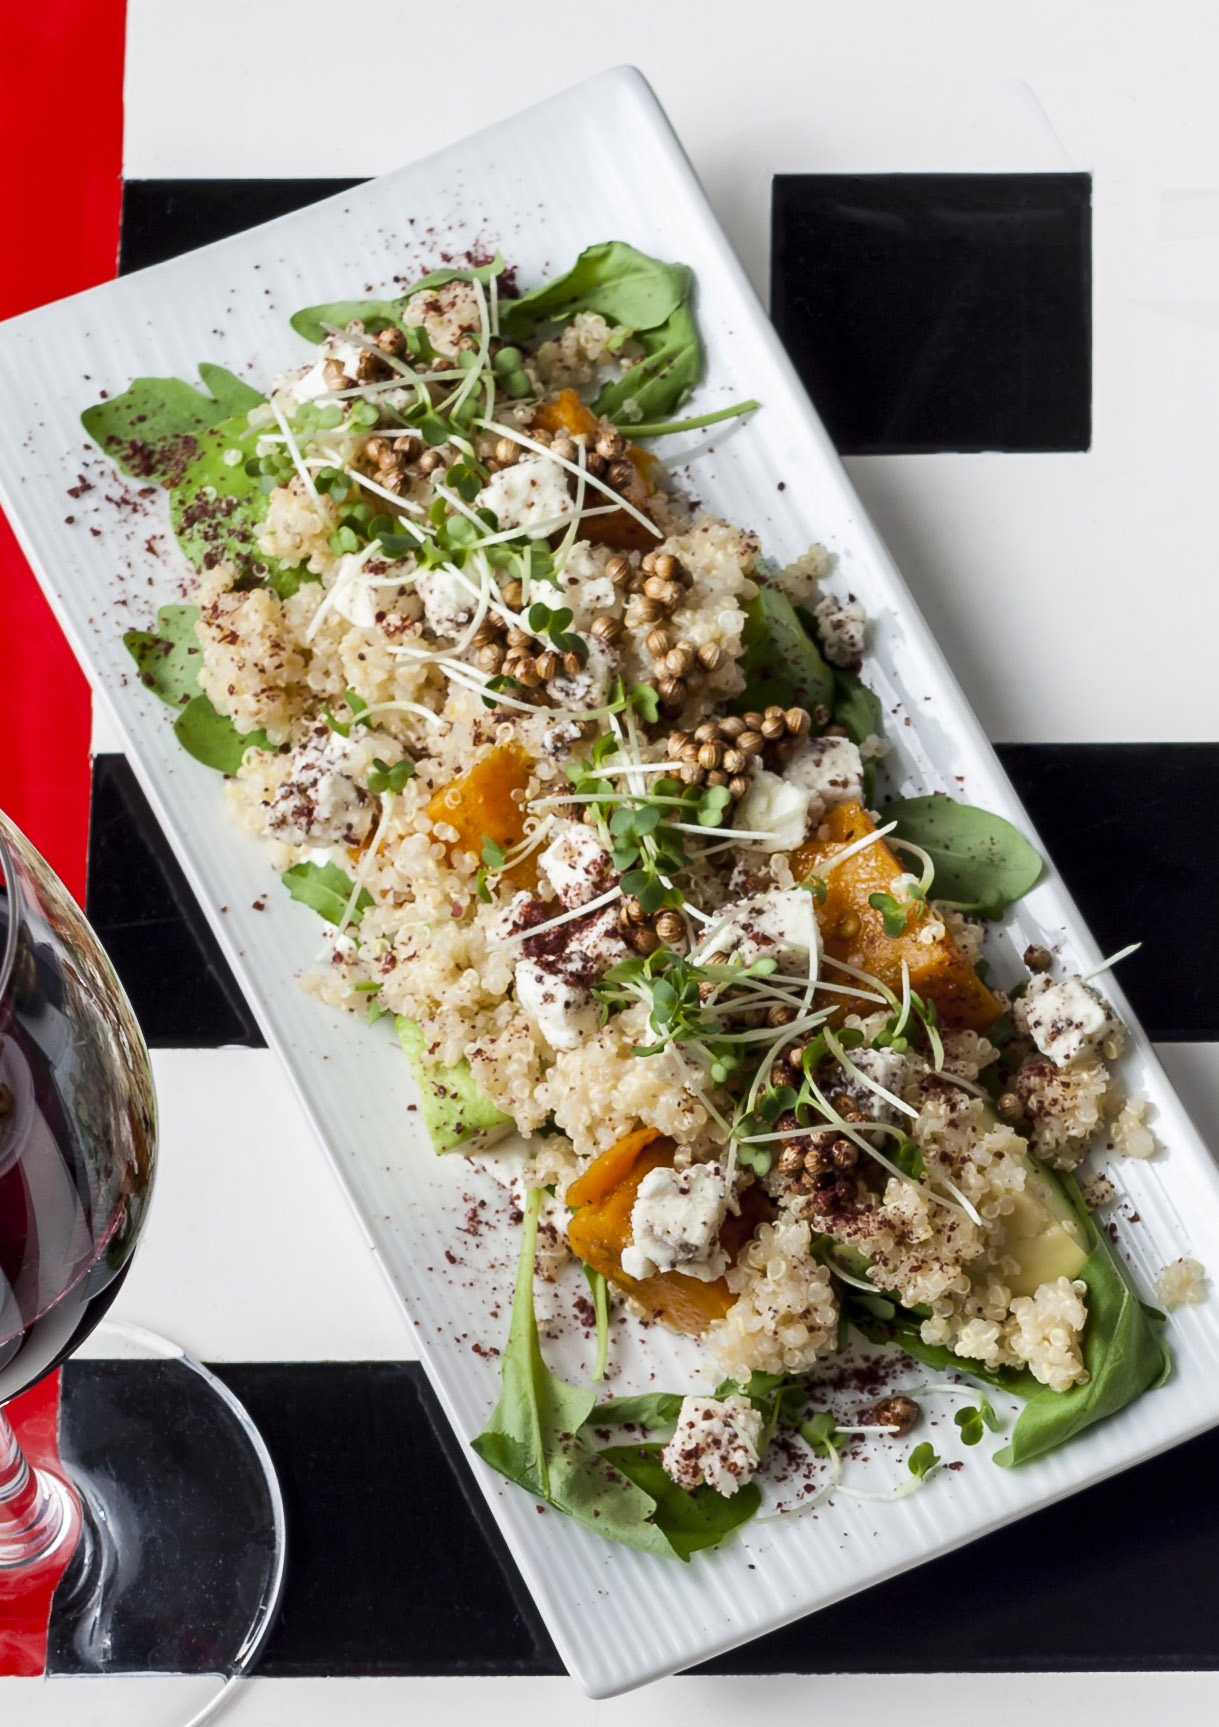 Roasted butternut and feta salad with quinoa, avocado and sumac - best quinoa recipes